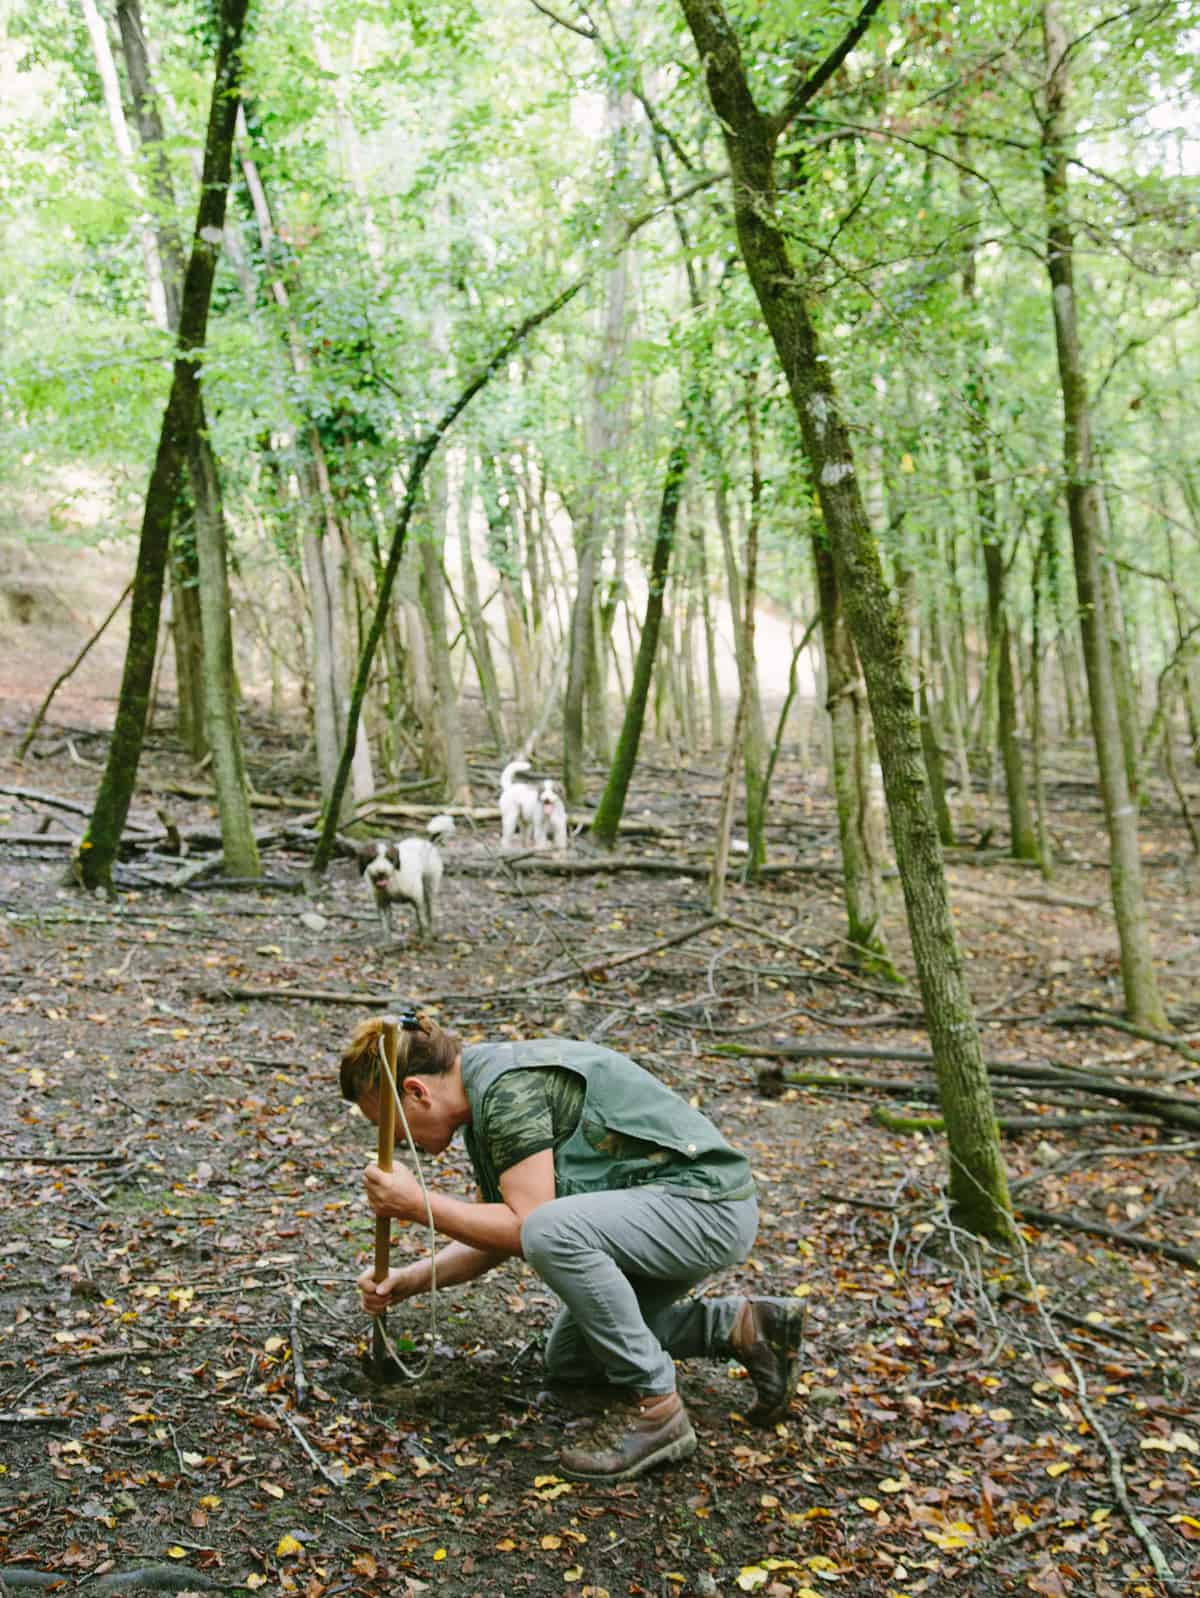 A woman digging for truffles in a forest with dogs.